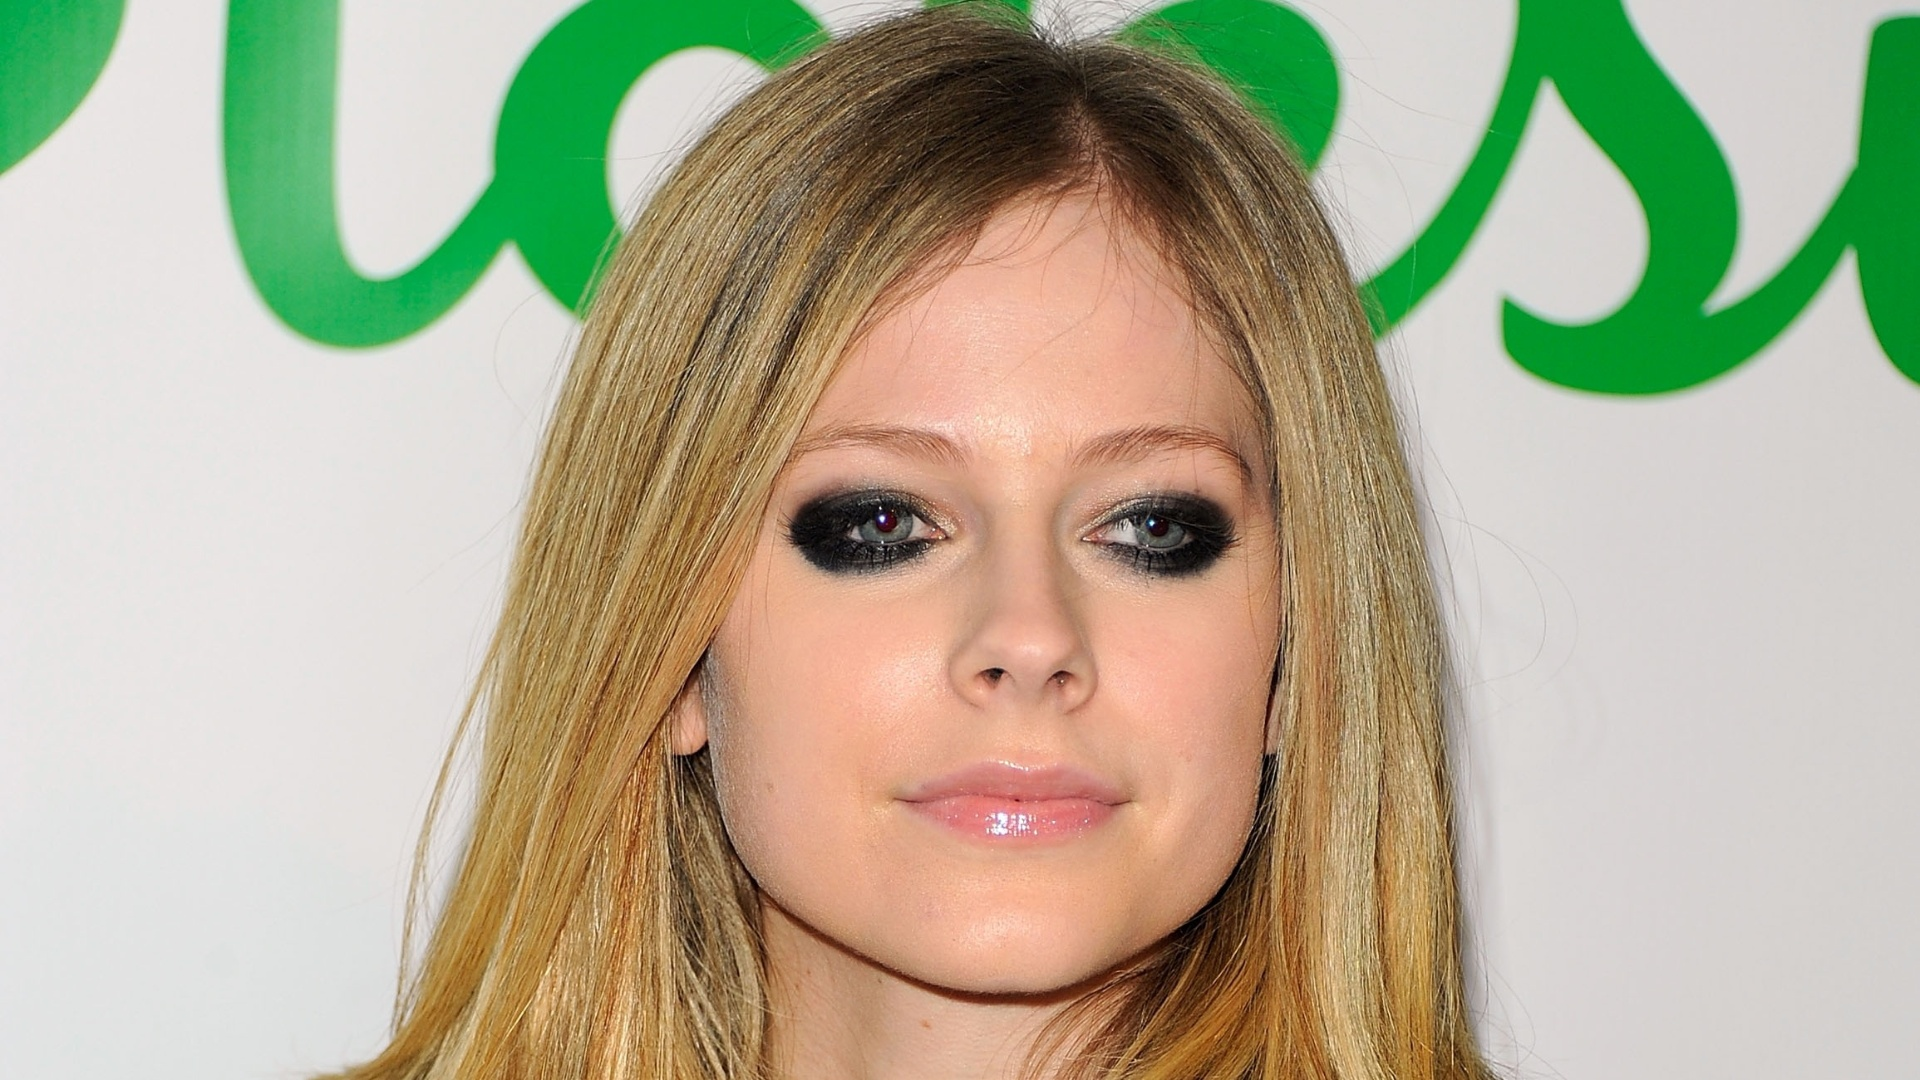 Avril Lavigne em evento em Nova York (22/11/11)